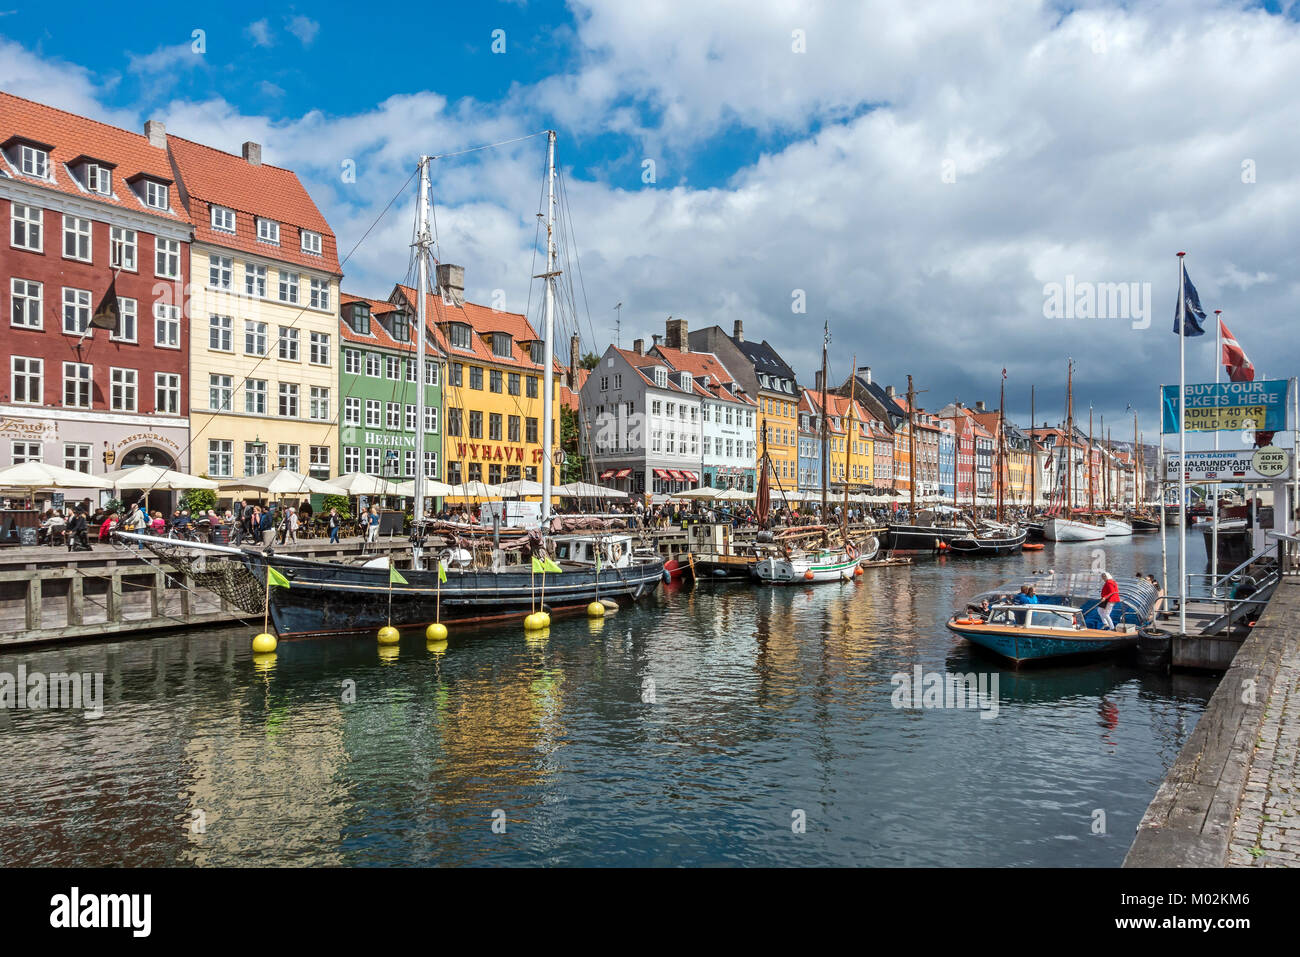 View of Nyhavn in Copenhagen Denmark UK looking towards the harbour entrance with canal boat taking on passengers - Stock Image